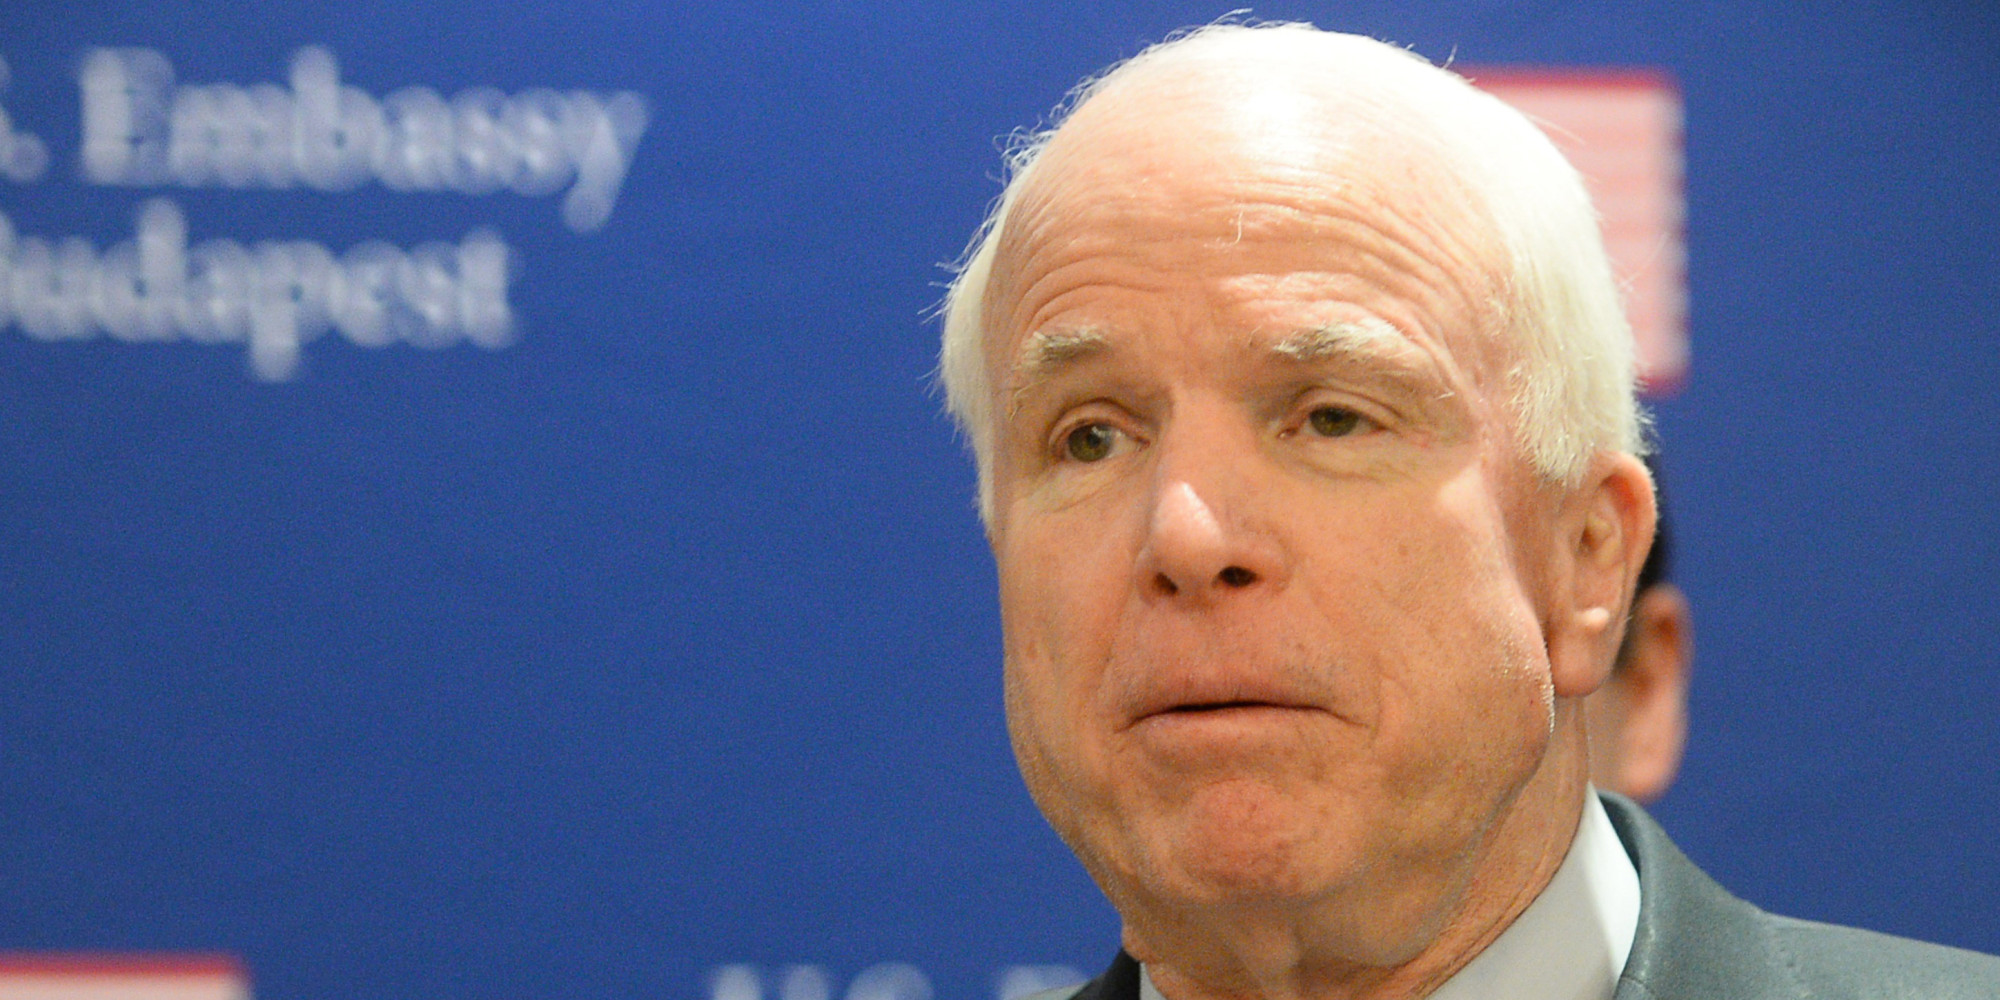 John Mccain Wants A Special Nsa Committee And Dianne